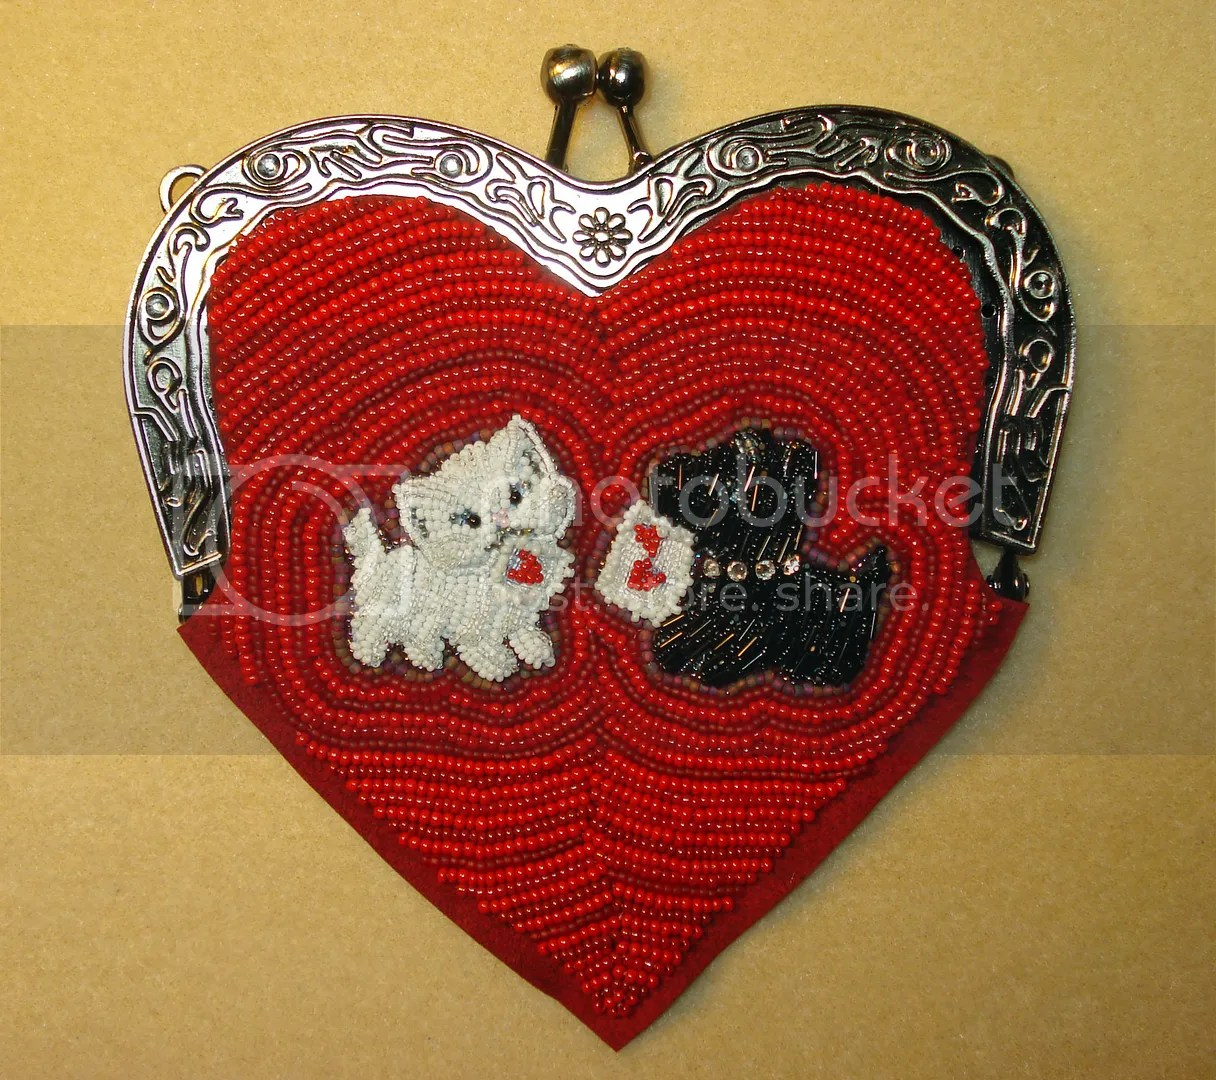 beaded heart shaped purse bead embroidery etsy Valentine's Day scottie dog cat Valentine